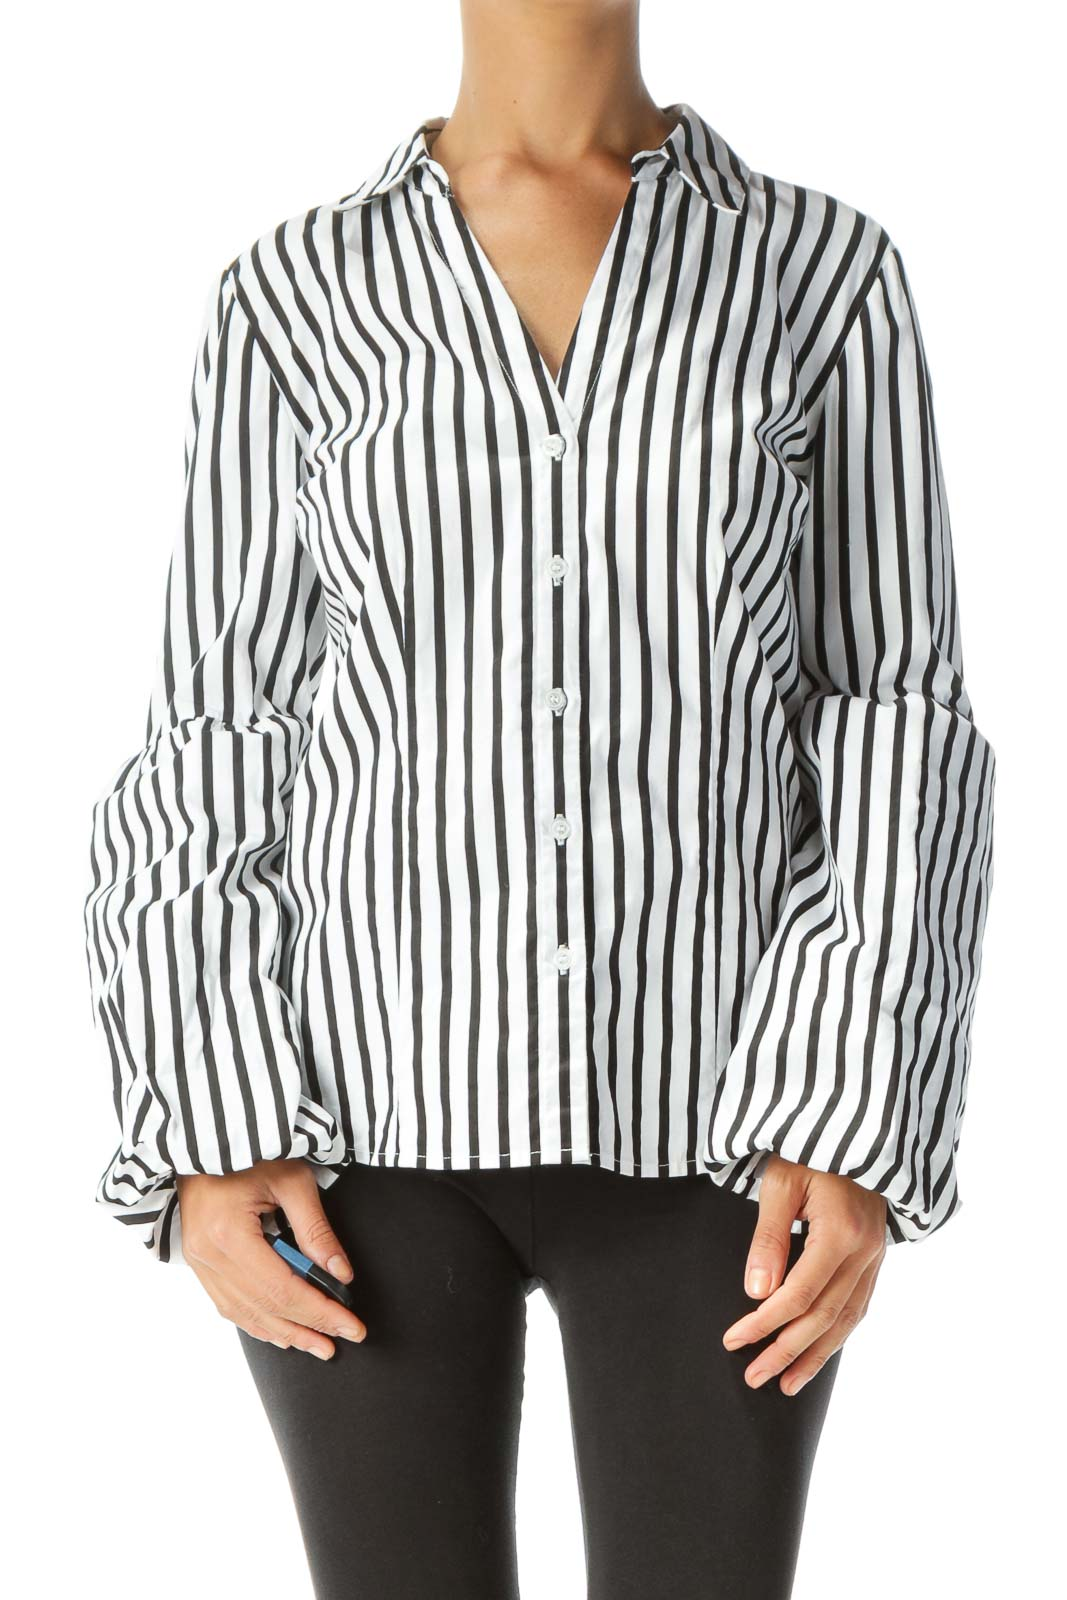 White Black Striped Shirt with Sleeve Detail